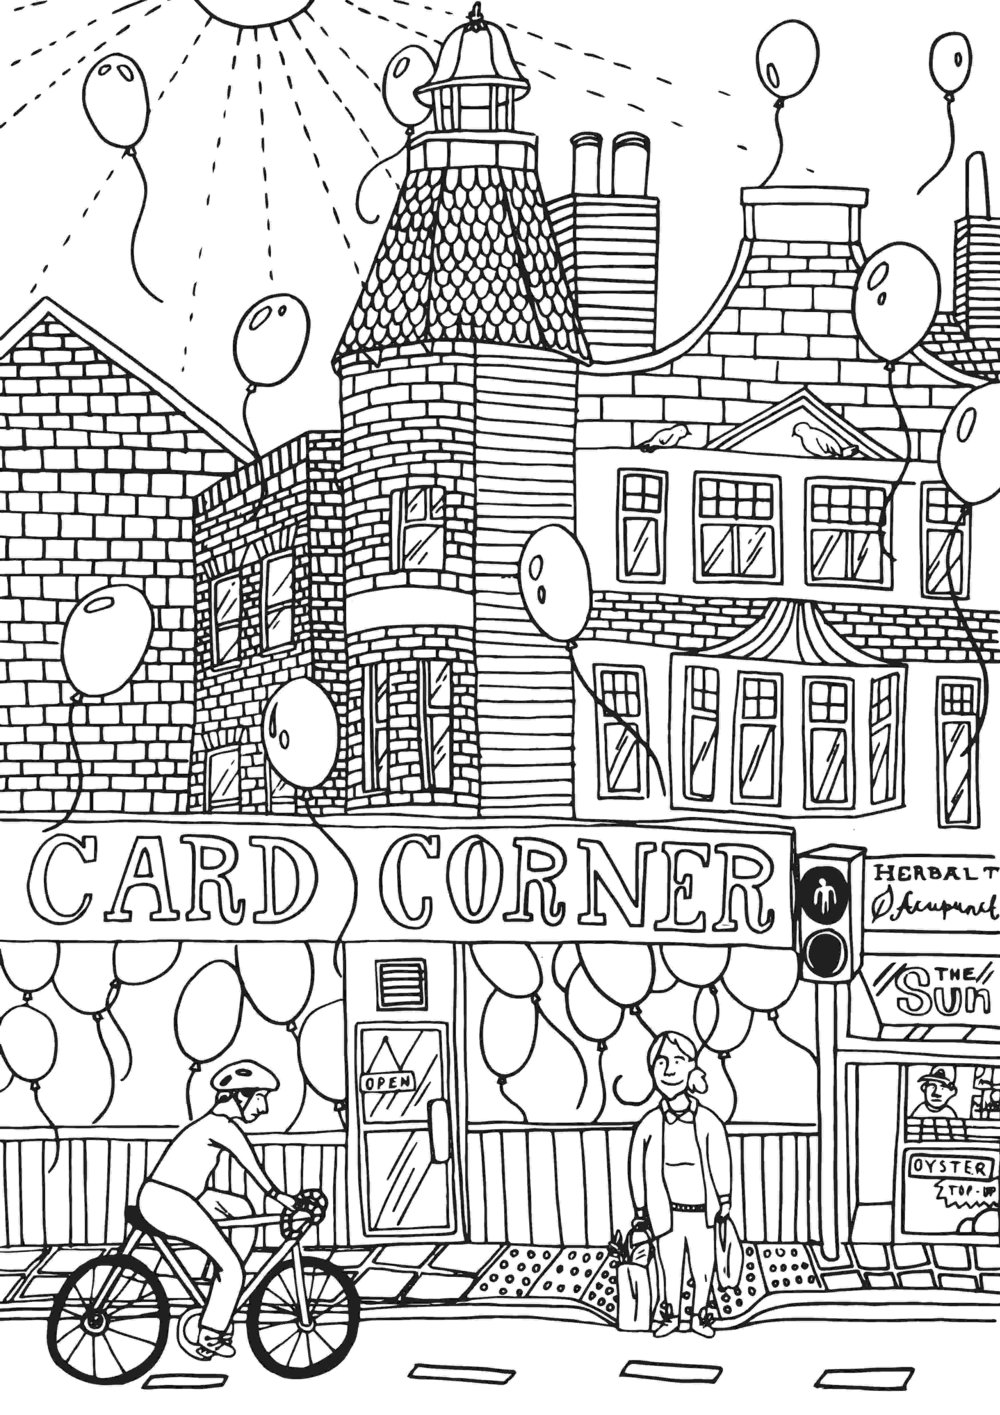 Card Corner low res.jpg